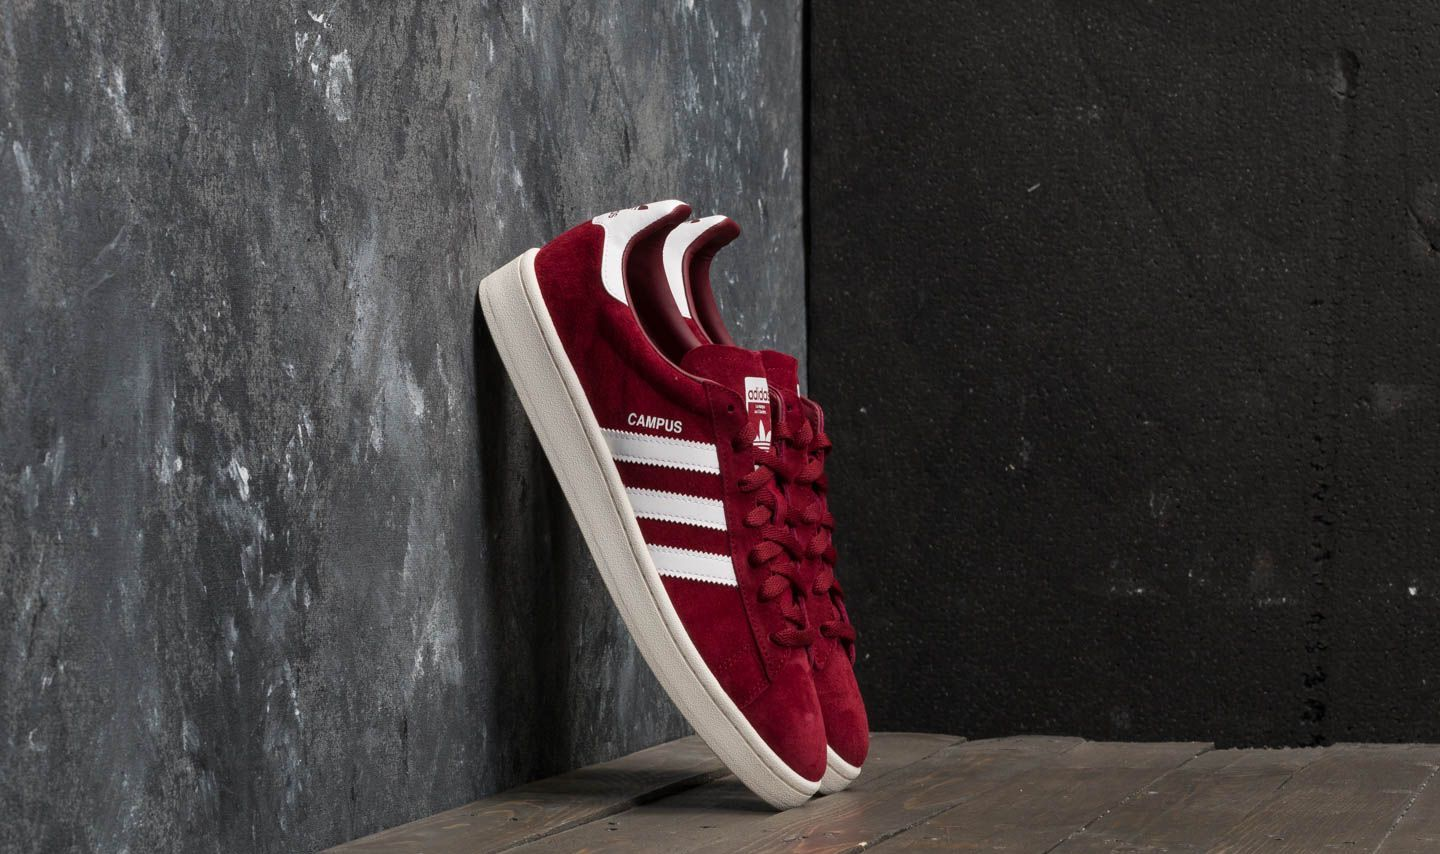 858328a4037550 adidas Campus Collegiate Burgundy  Ftw White  Chalk White at a great price  £54